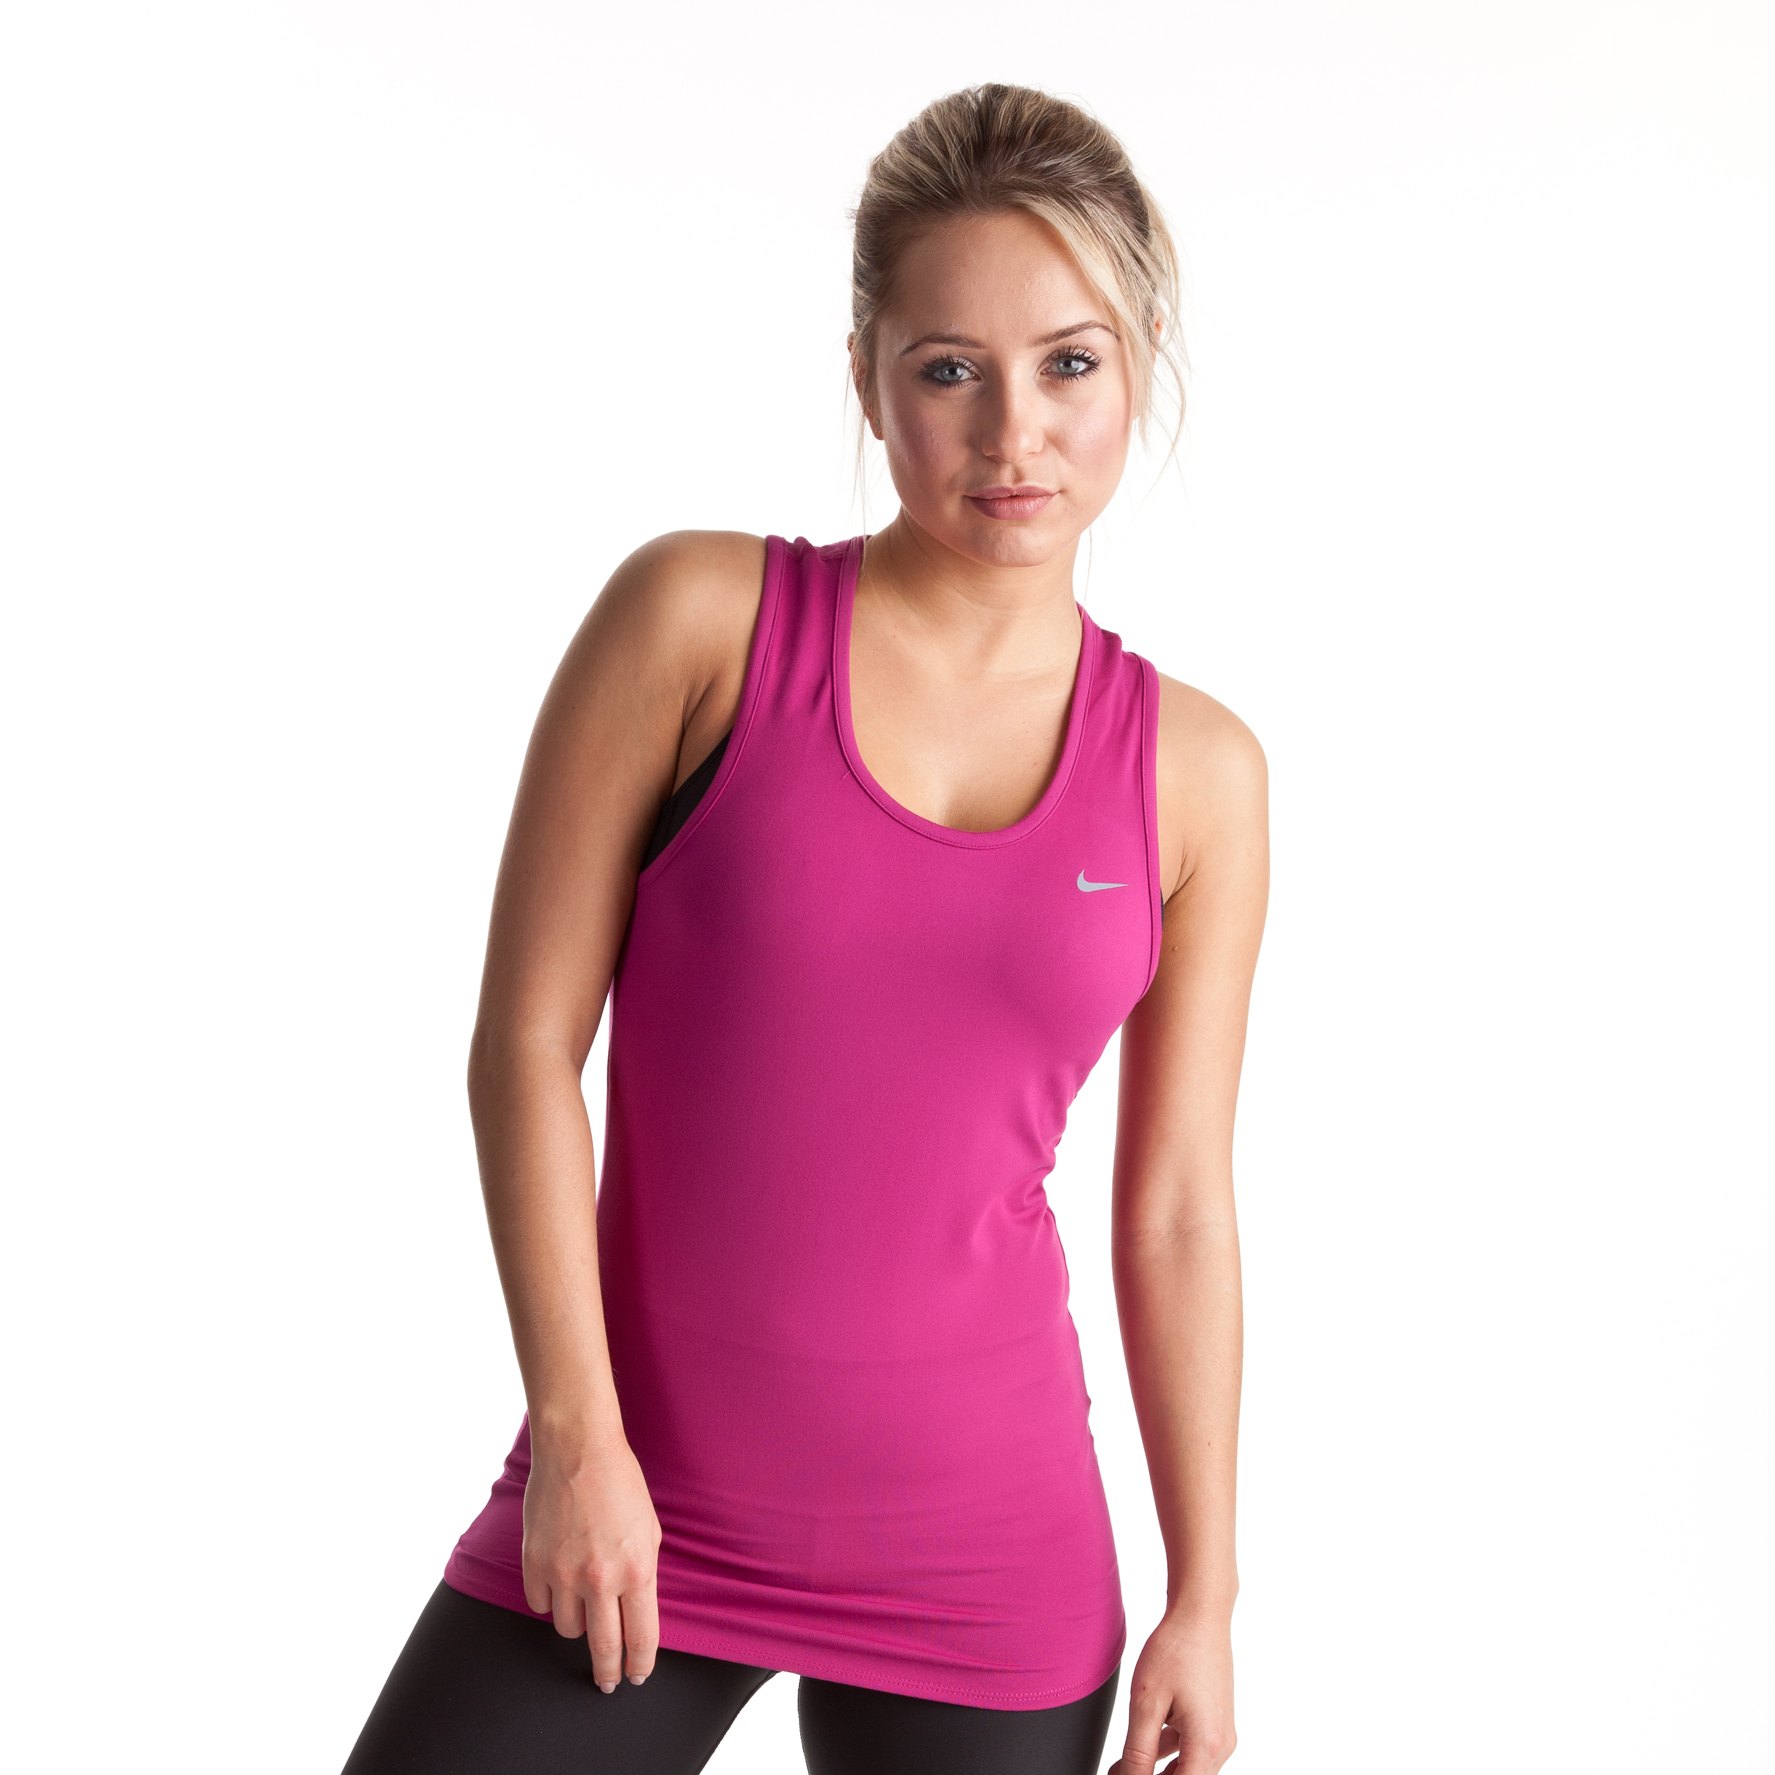 Nike Regular Club Sleeveless - Rave Pink/Cool Grey - Womens